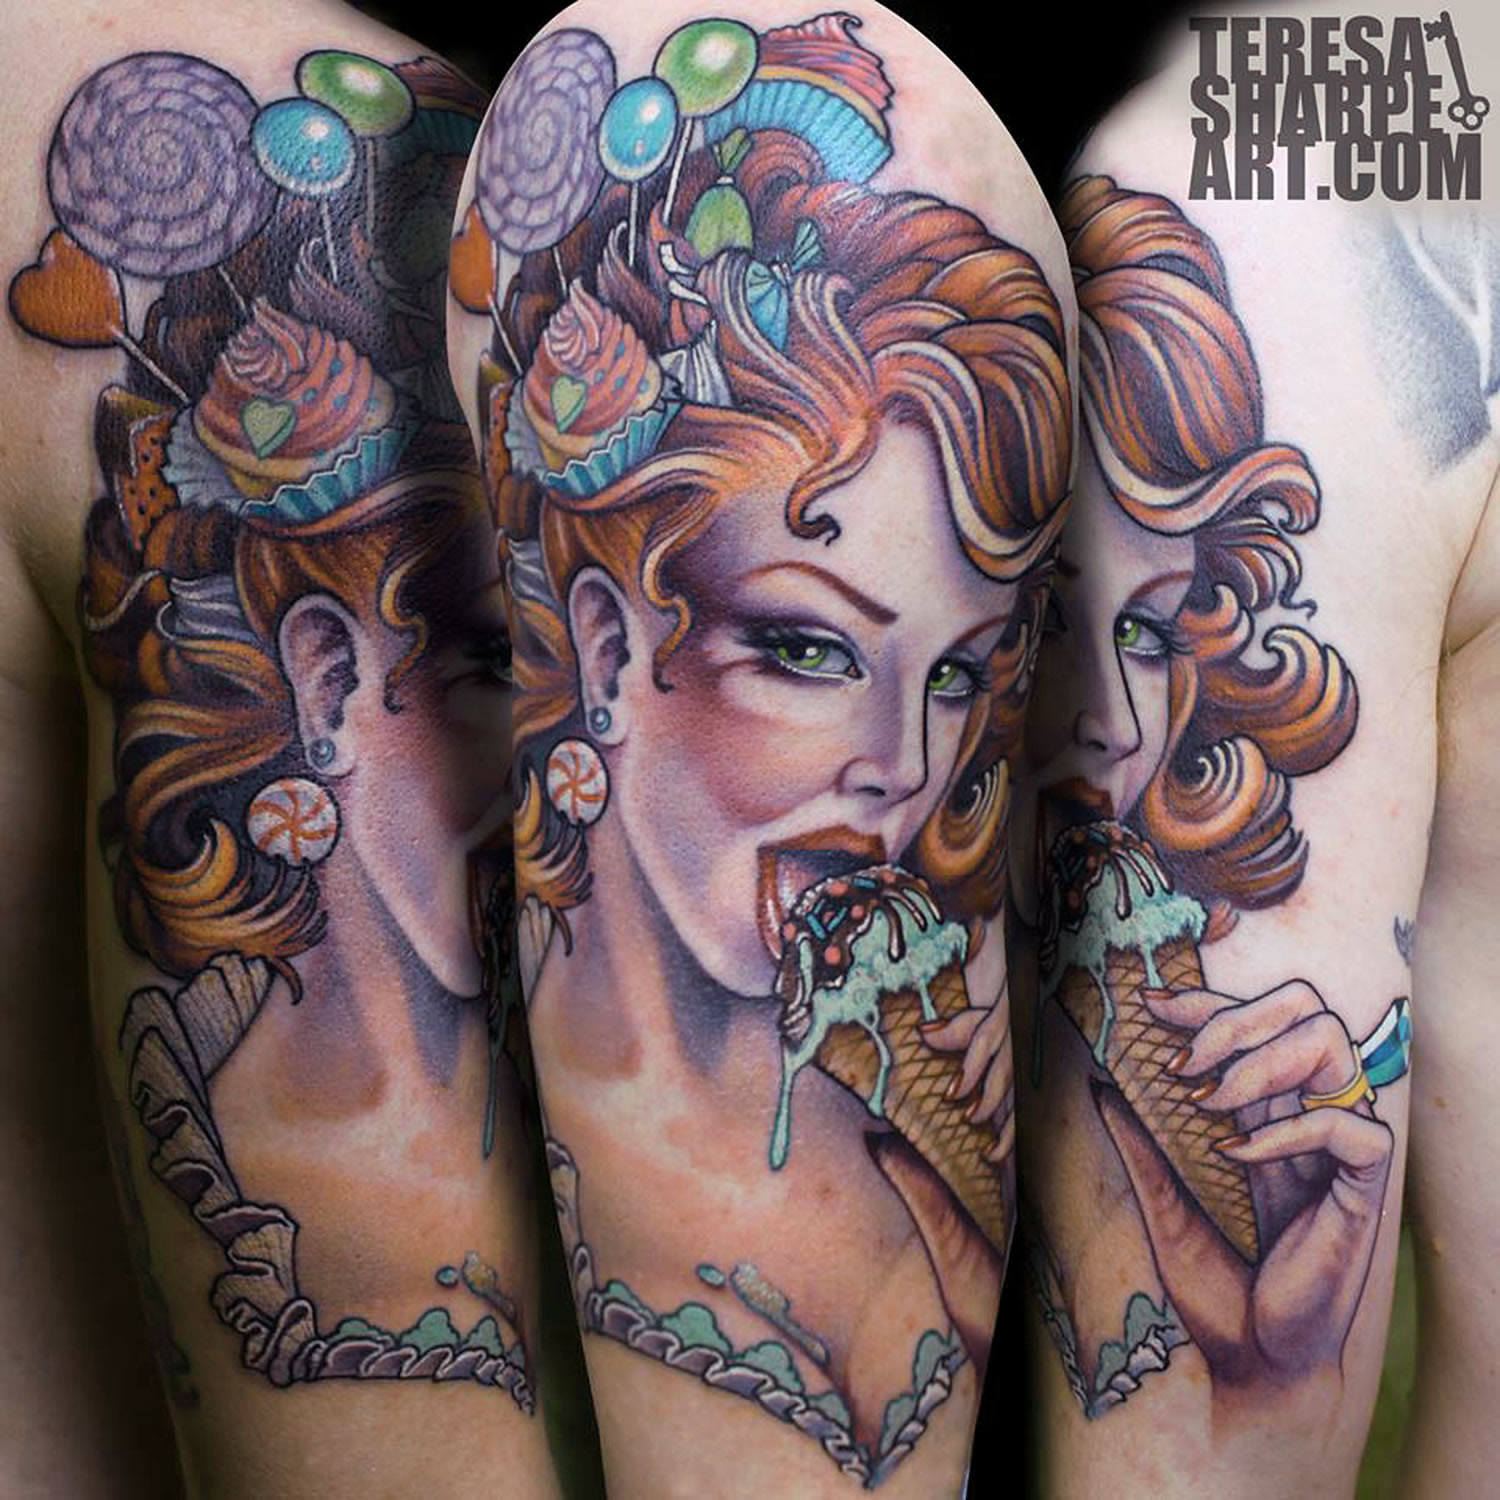 pinup girl eating icecream, tattoo